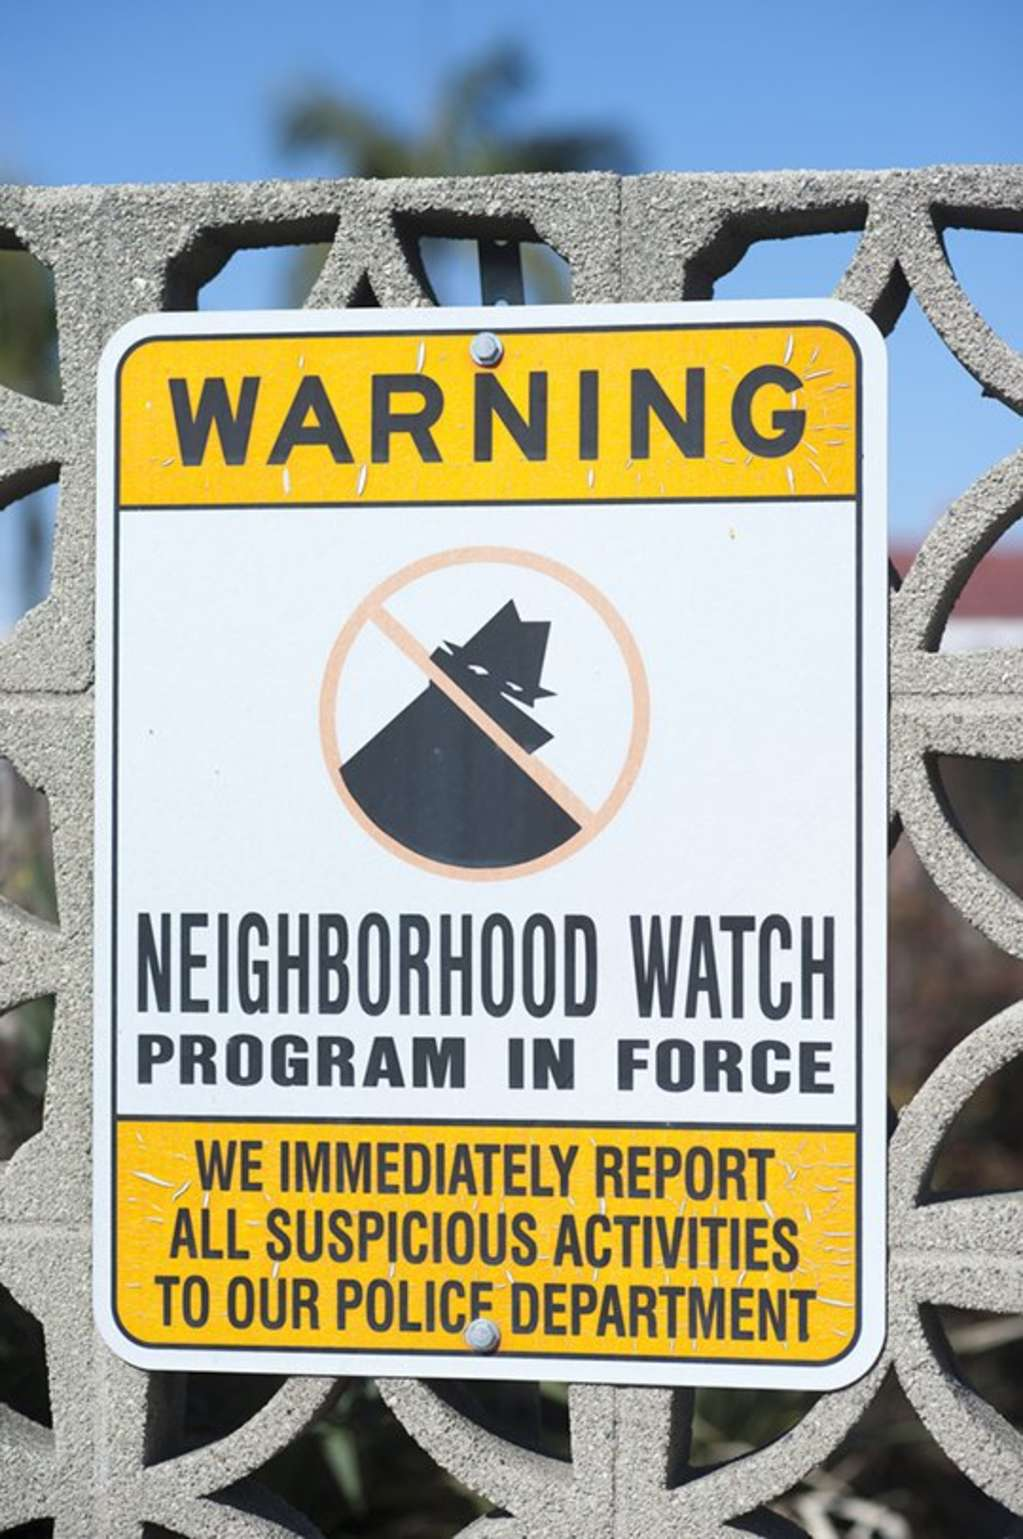 Location, Location, Location: Things to Beware of When Moving to a New Neighborhood